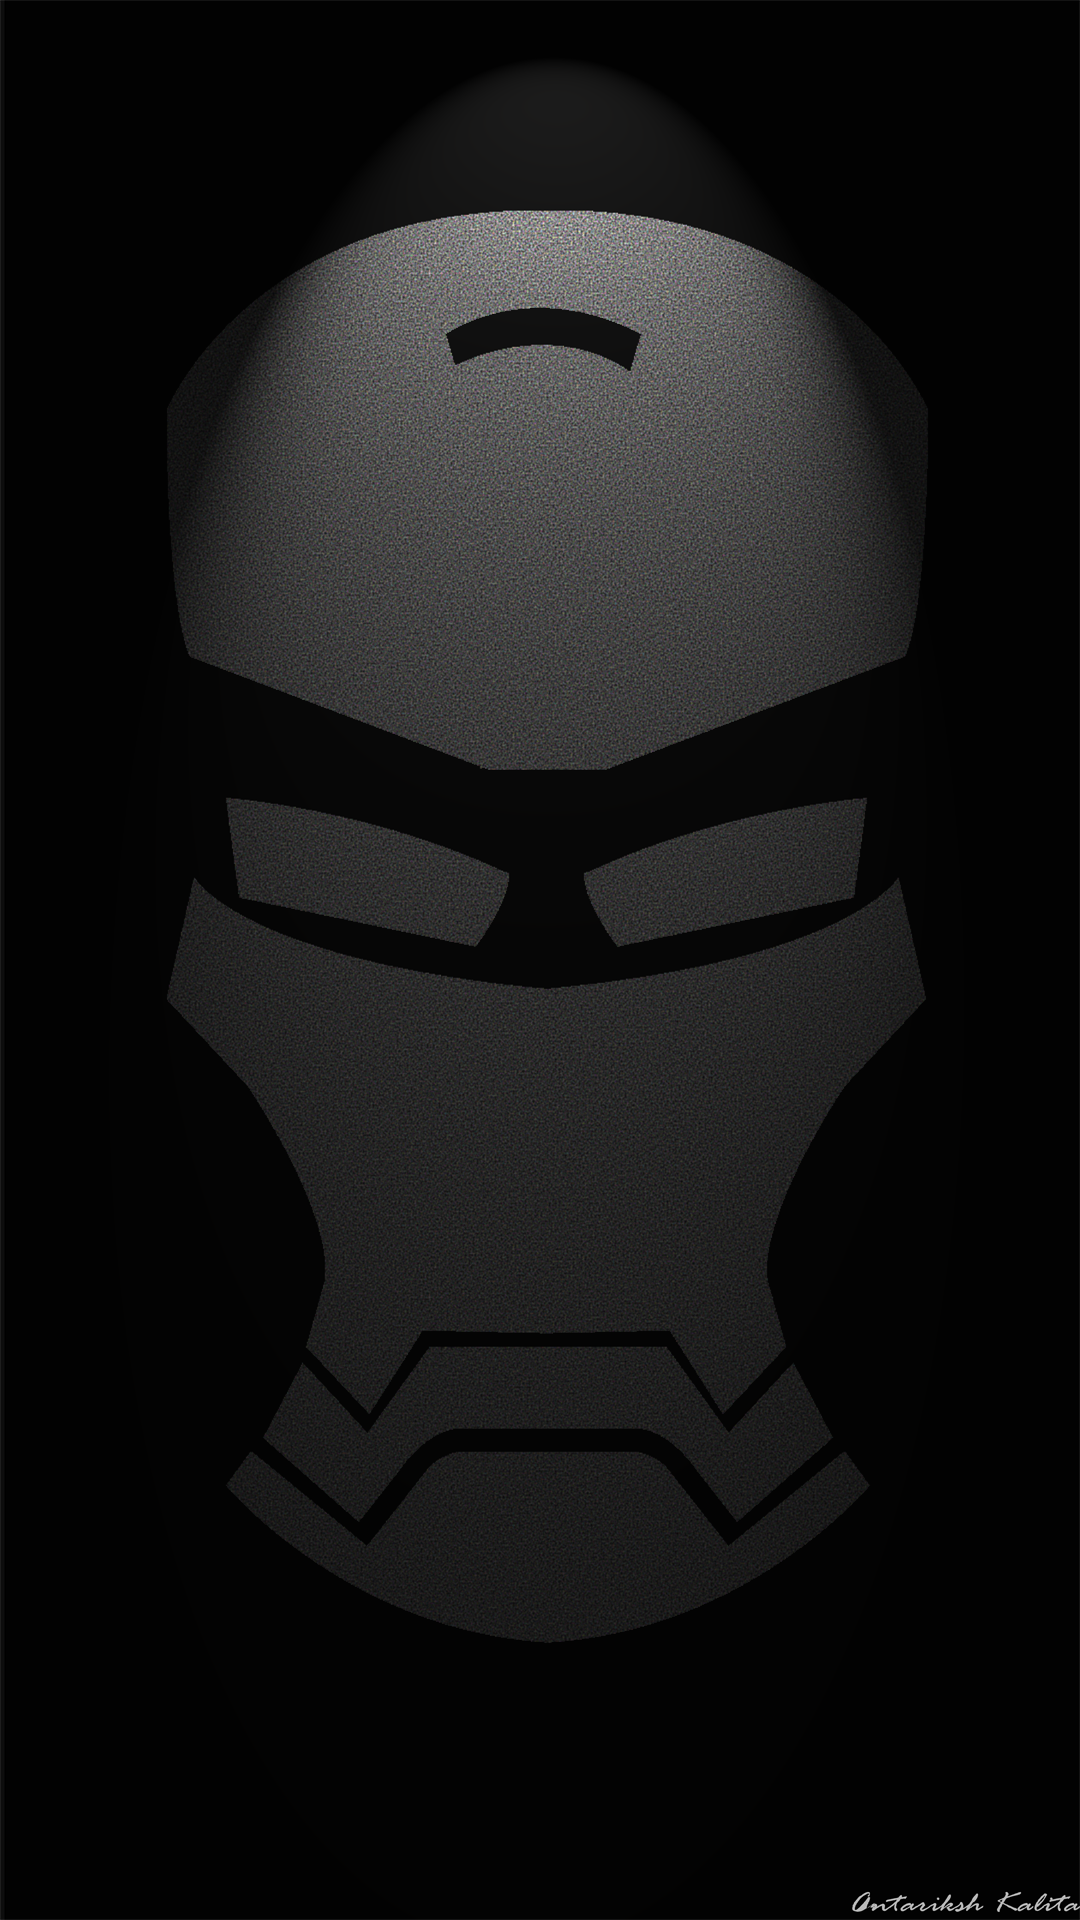 irom man wallpaper for mobile hd 63936